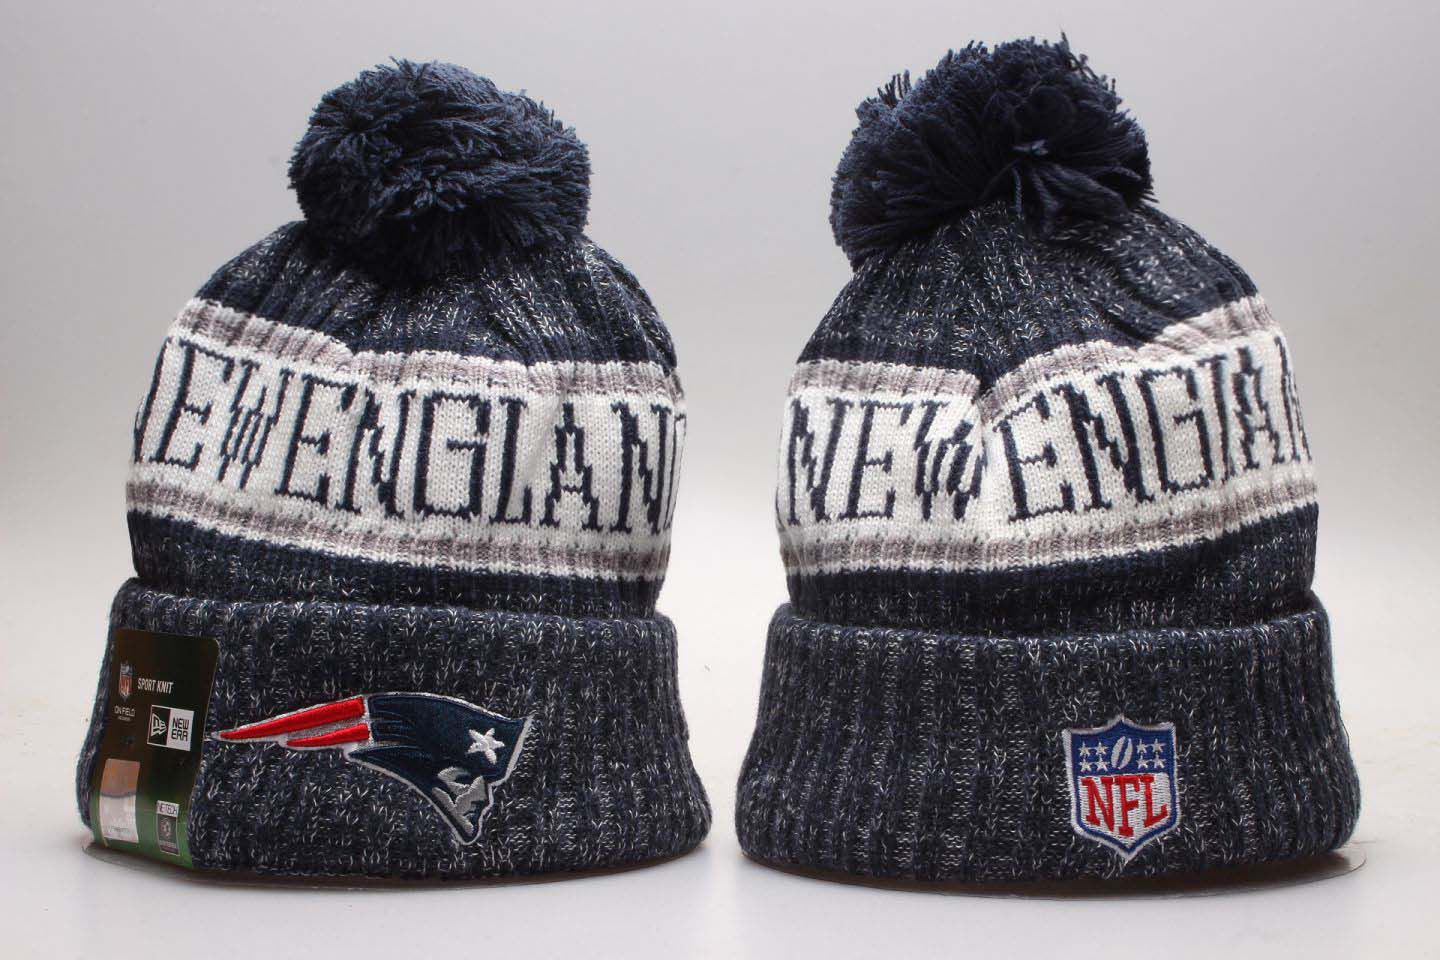 NFL New England Patriots Beanie hot hat1